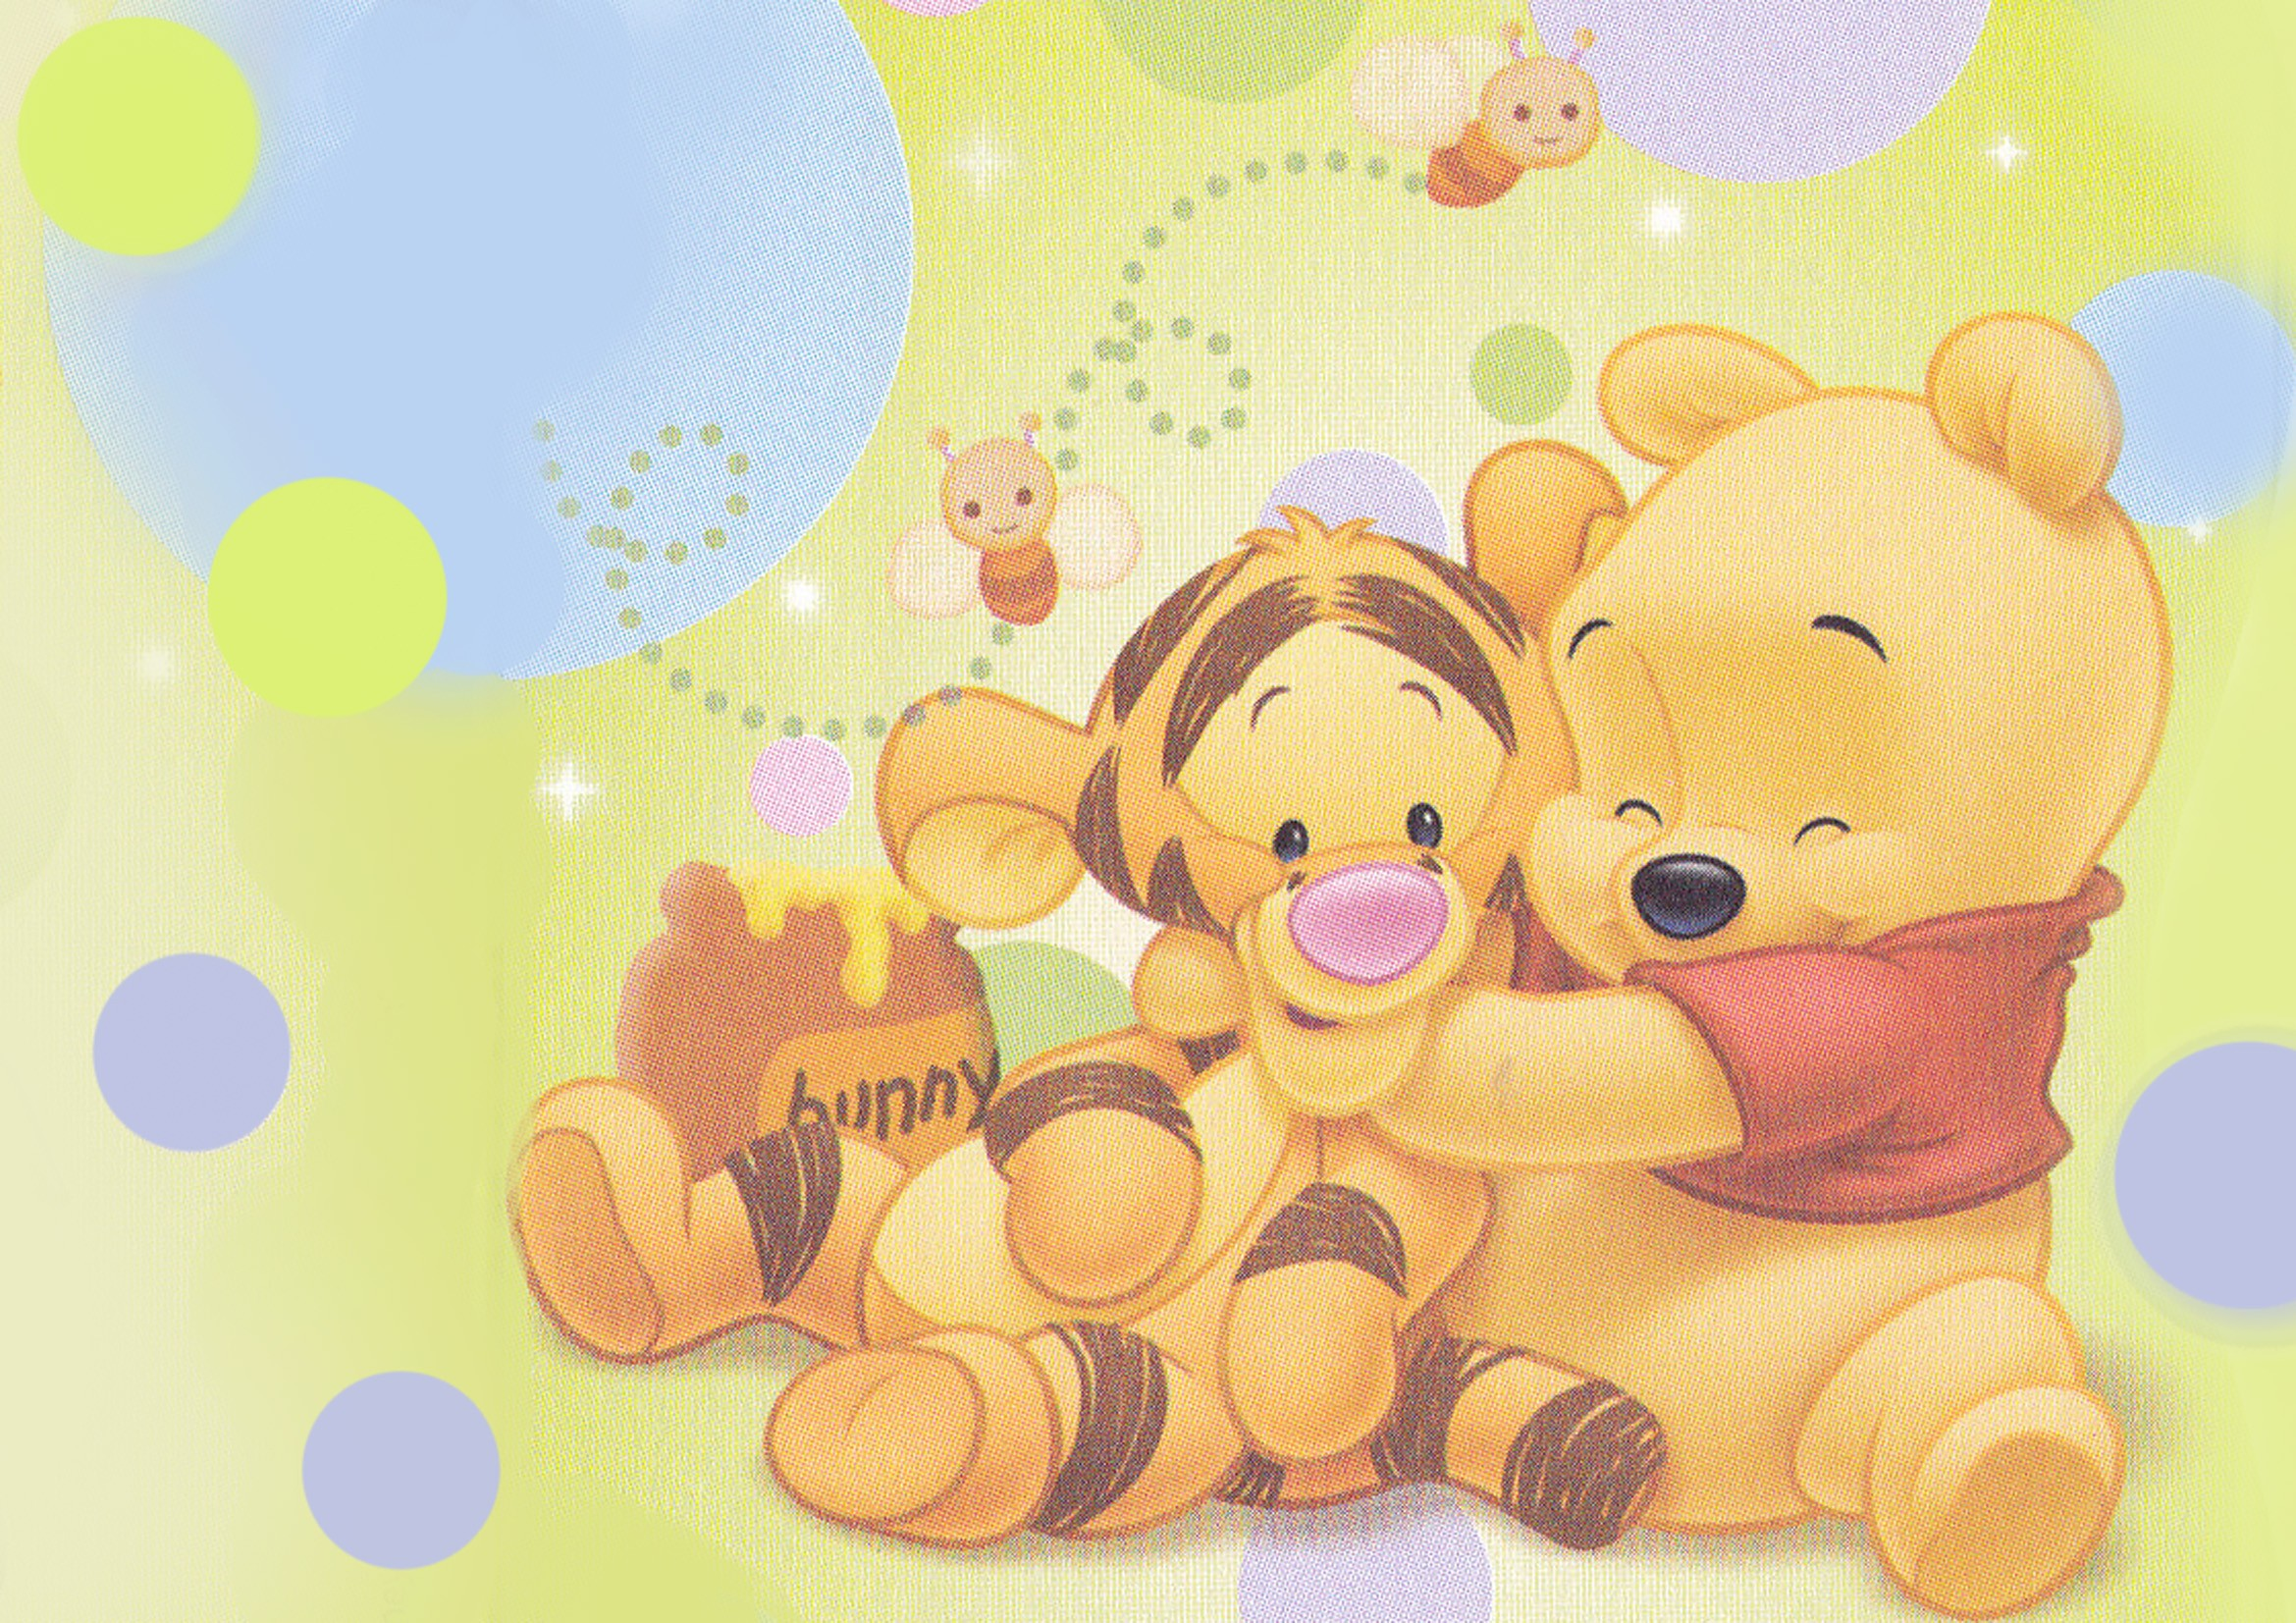 Free Download Baby Winnie The Pooh And Friends Wallpaper 2339x1653 For Your Desktop Mobile Tablet Explore 78 Winnie The Pooh And Friends Wallpaper Winnie The Pooh And Friends Wallpaper